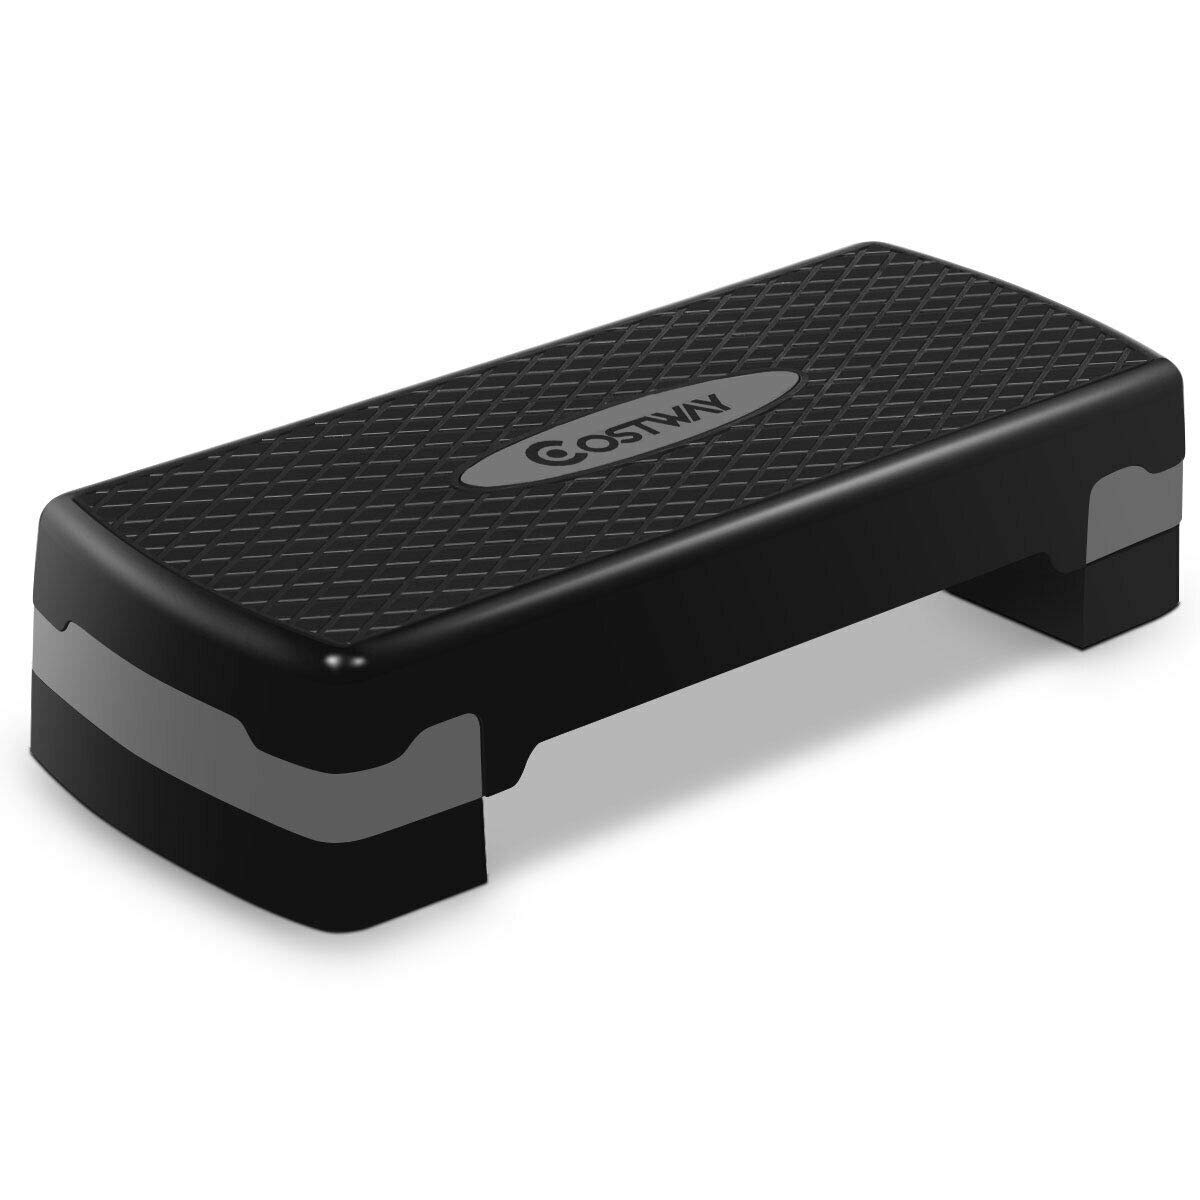 COSTWAY 27 Fitness Platform Aerobic Stepper with Risers-Adjustable from 4 to 6 Exercise Stepper Home Gym